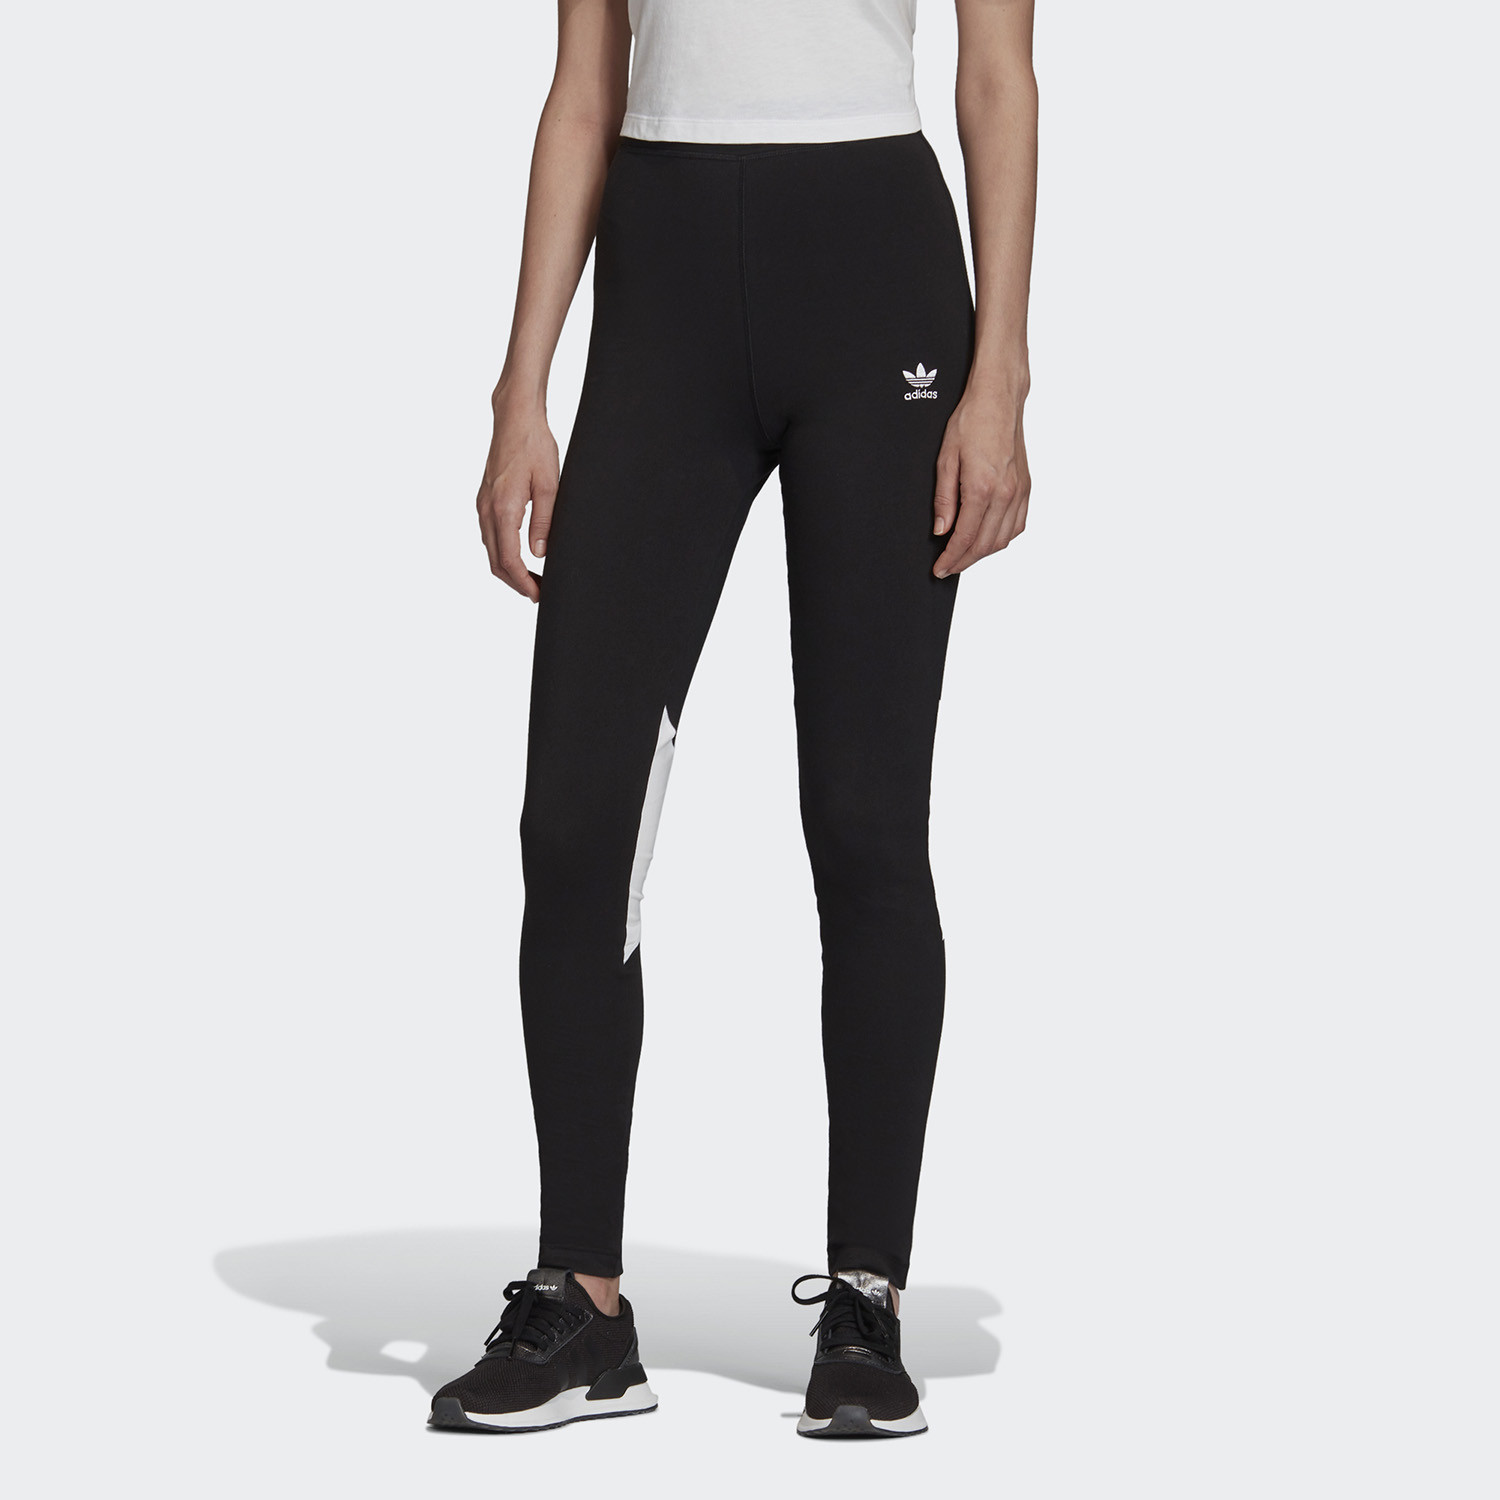 adidas Originals Bellista Leggings (9000045235_1469)